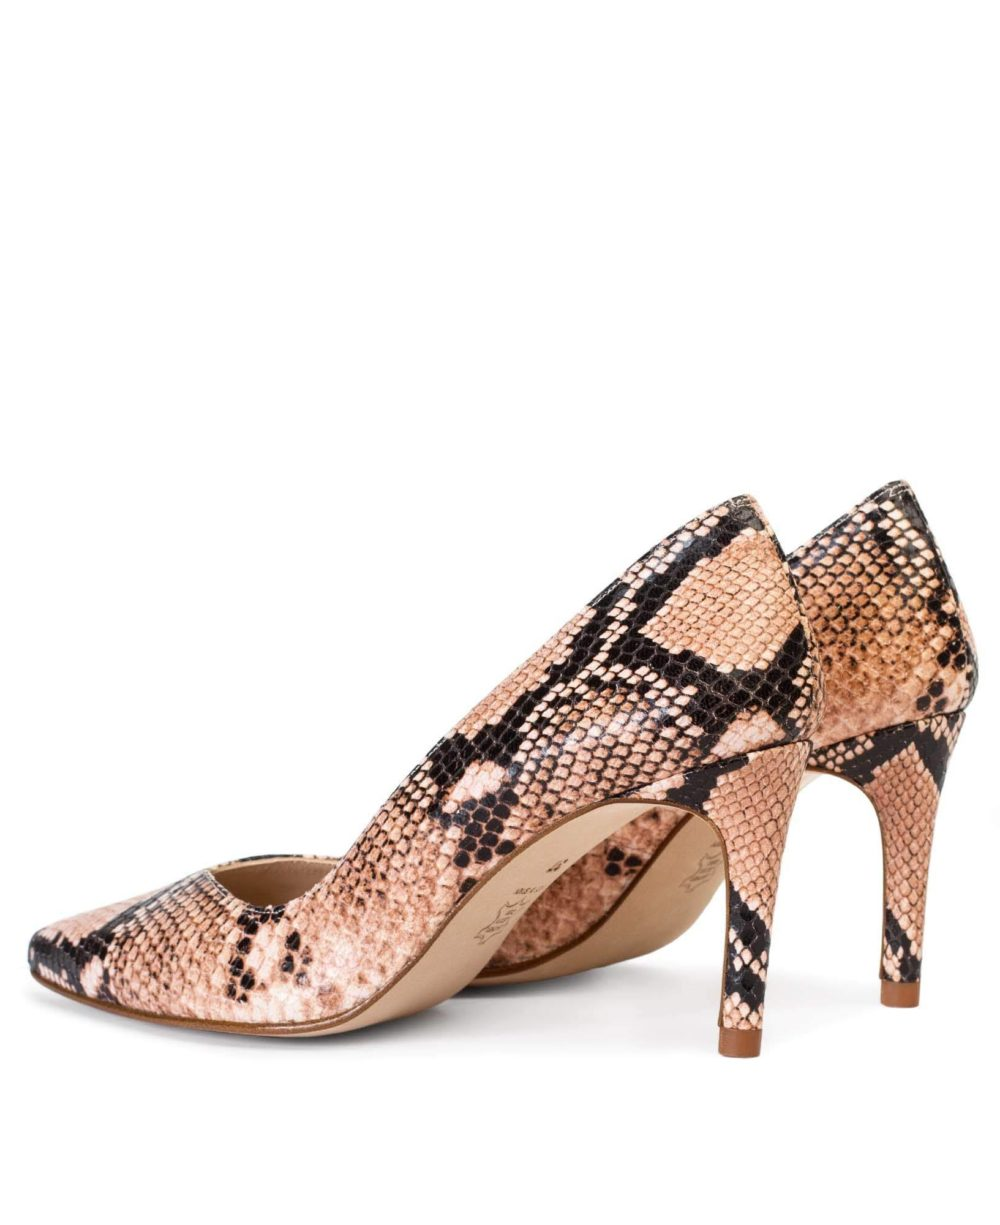 zapato-salon-animal-print-serpiente